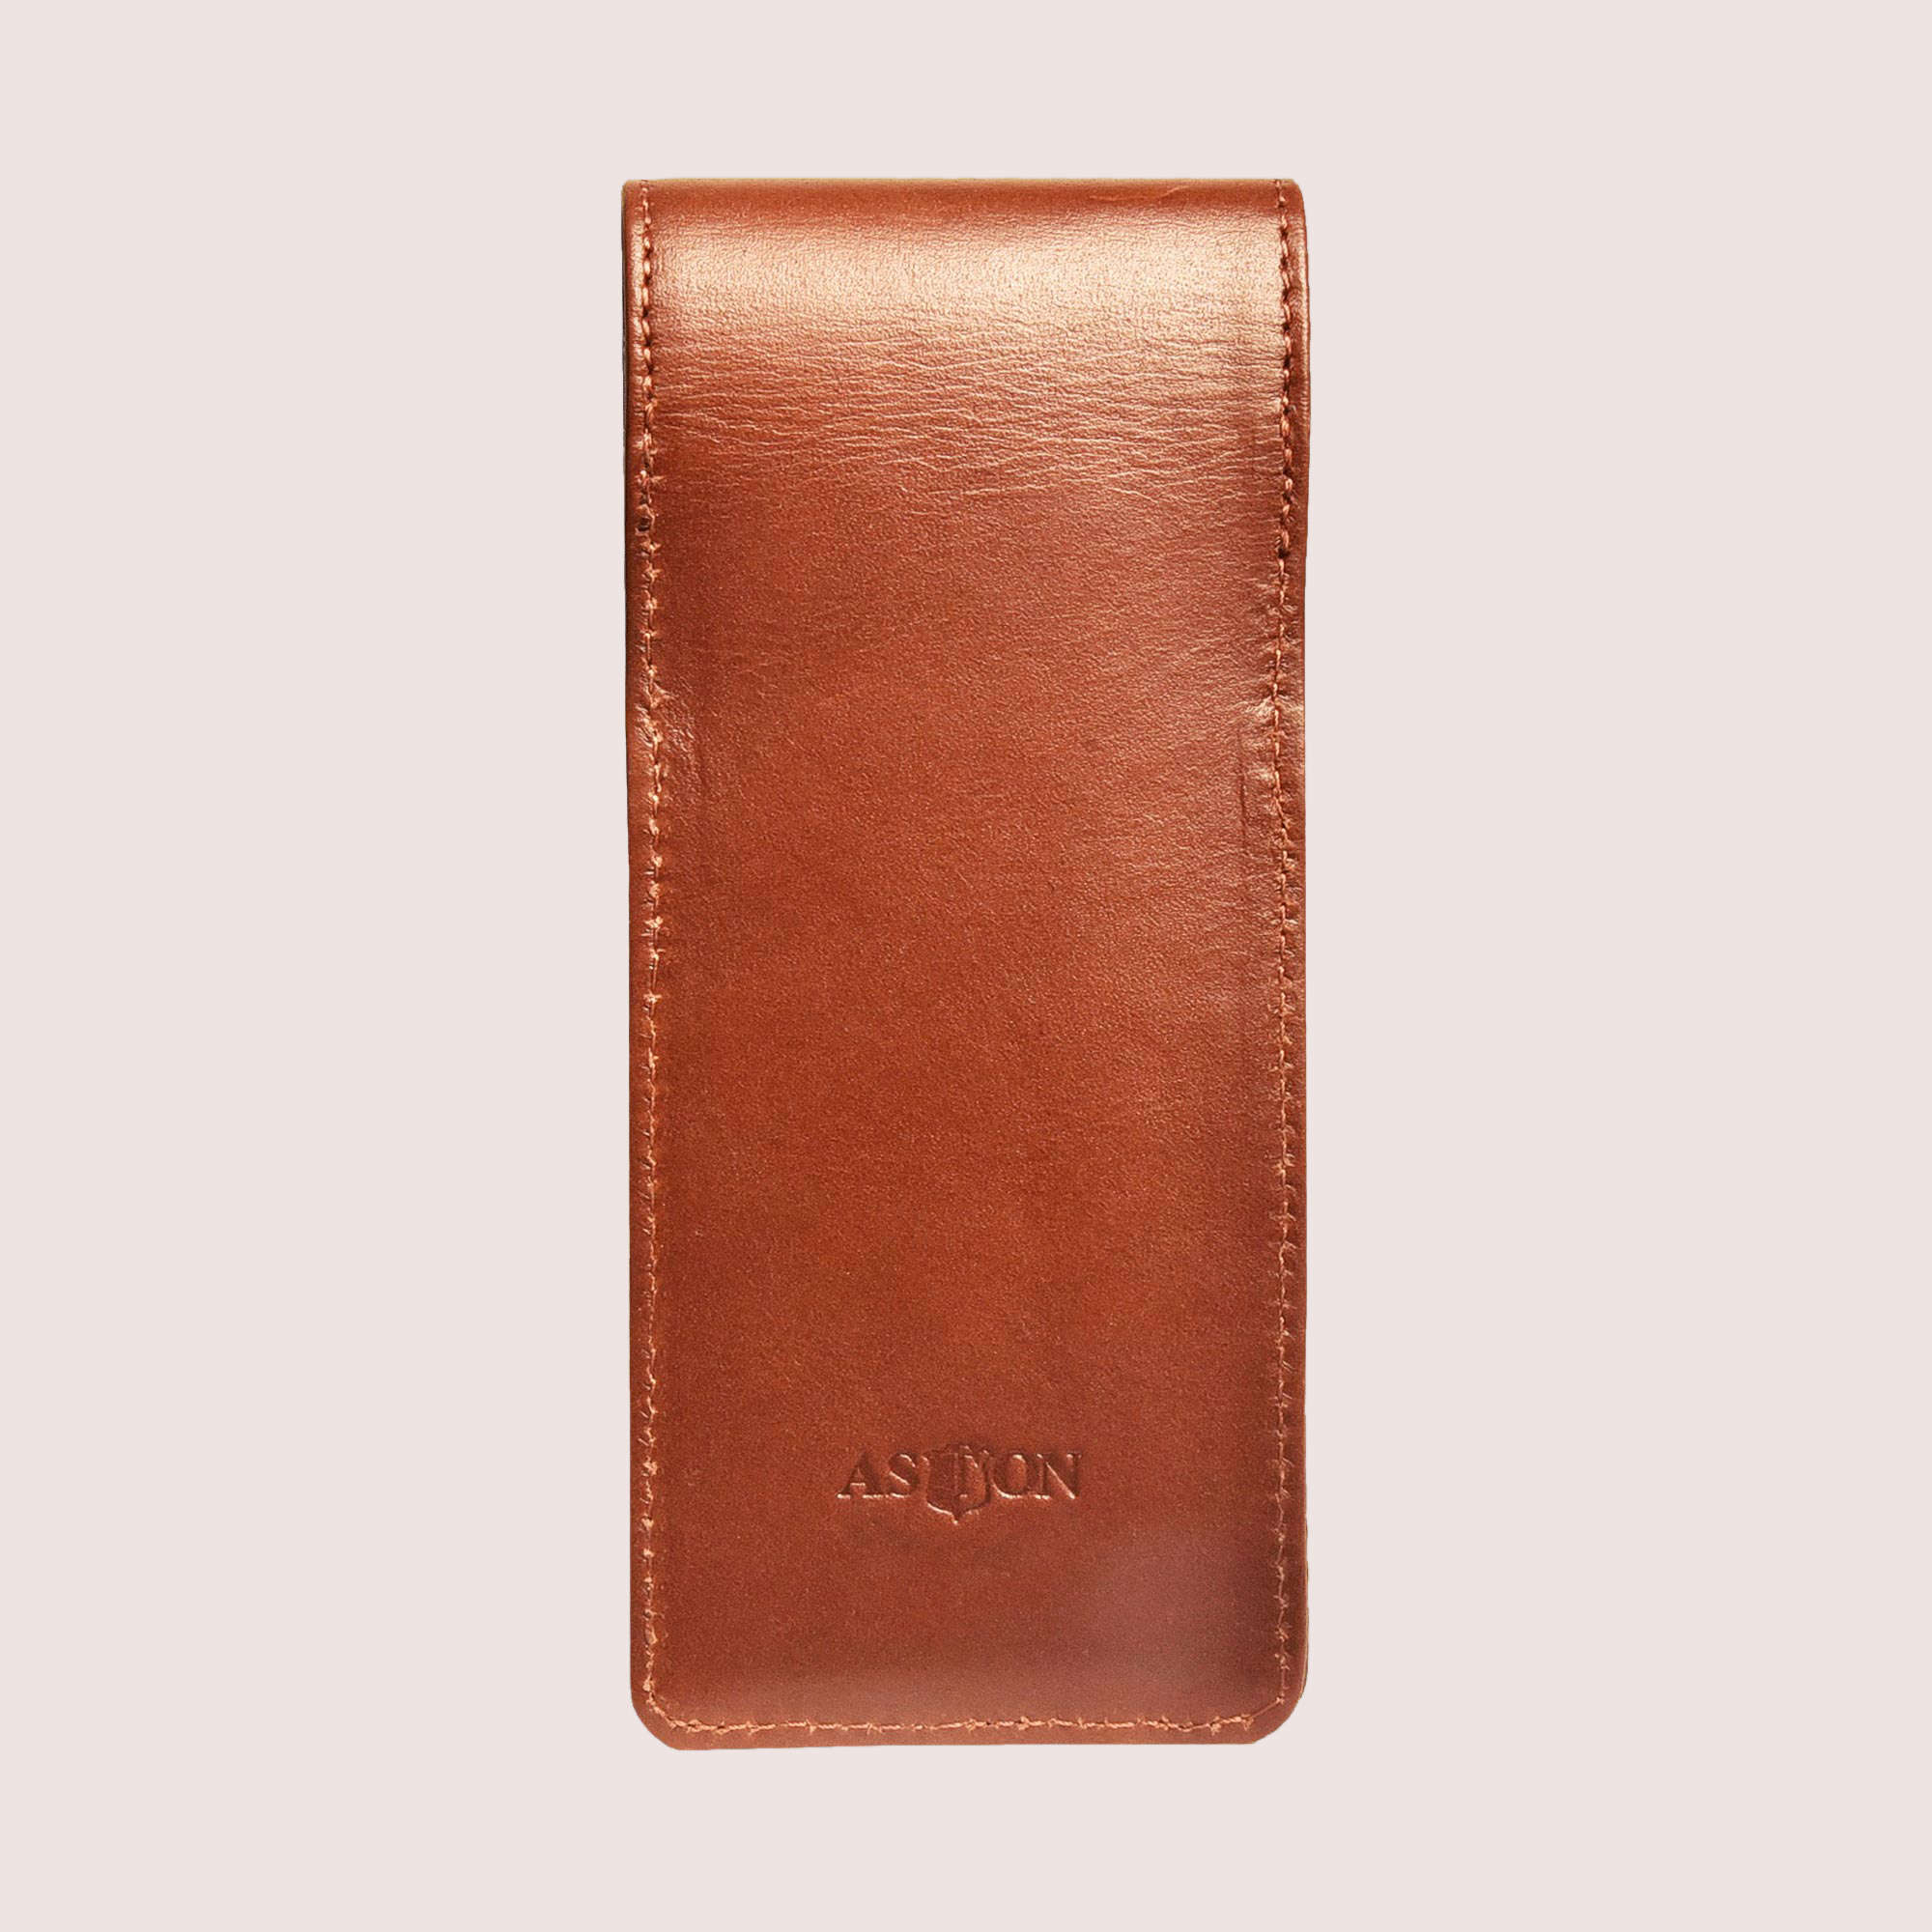 Three Pen Leather Case